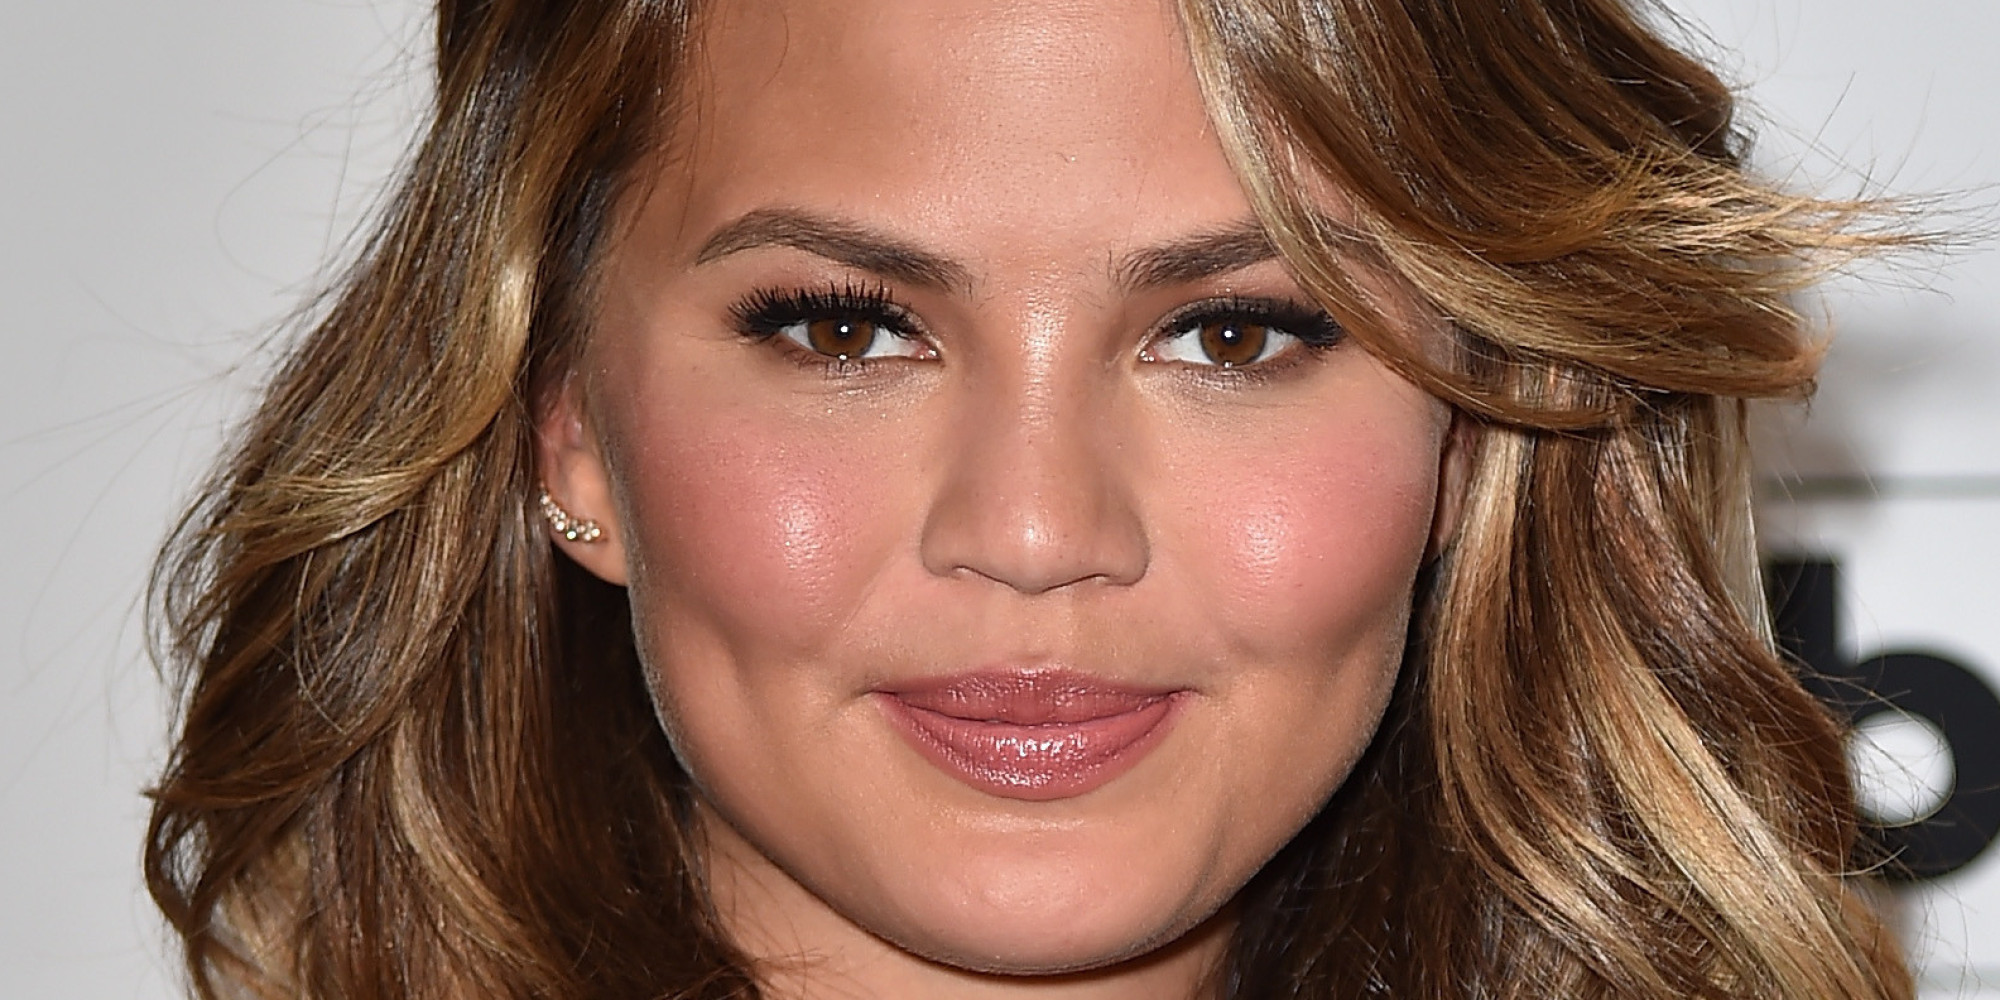 Chrissy Teigen S Medium Length Hair Amp More Beauty Looks We